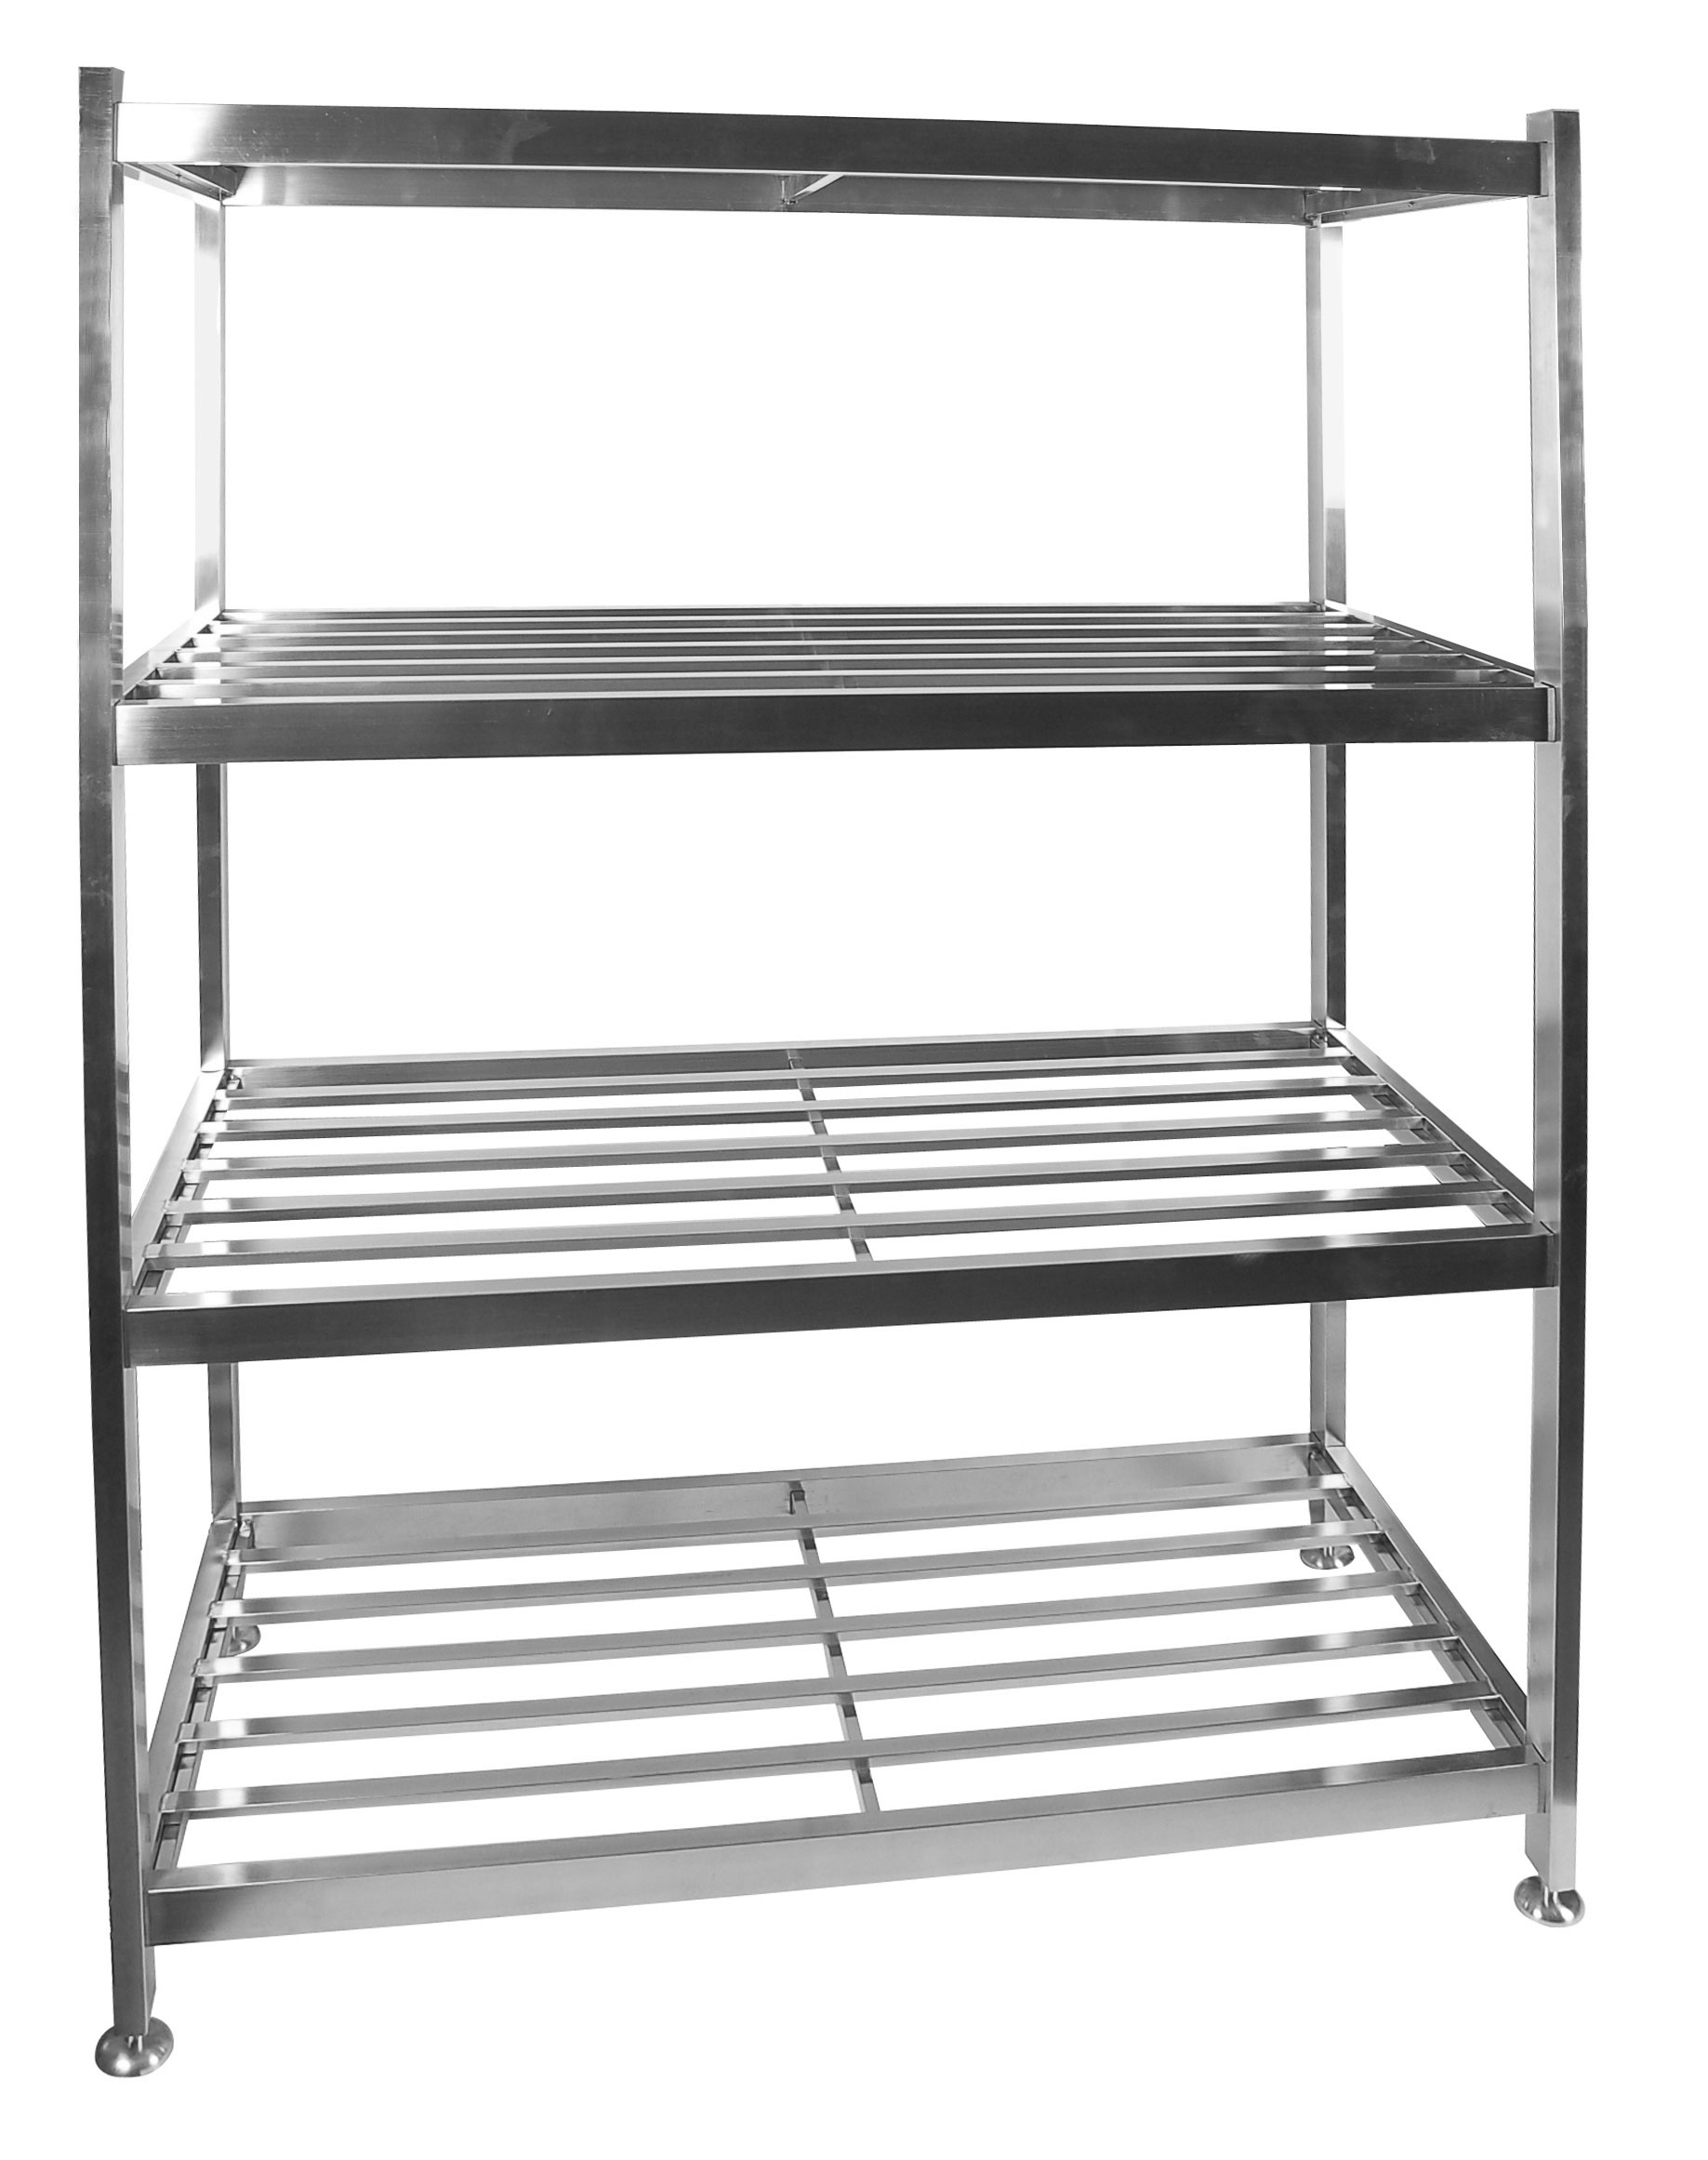 POT RACK S/STEEL - FLOOR STANDING 1200 x 600 x 1450mm